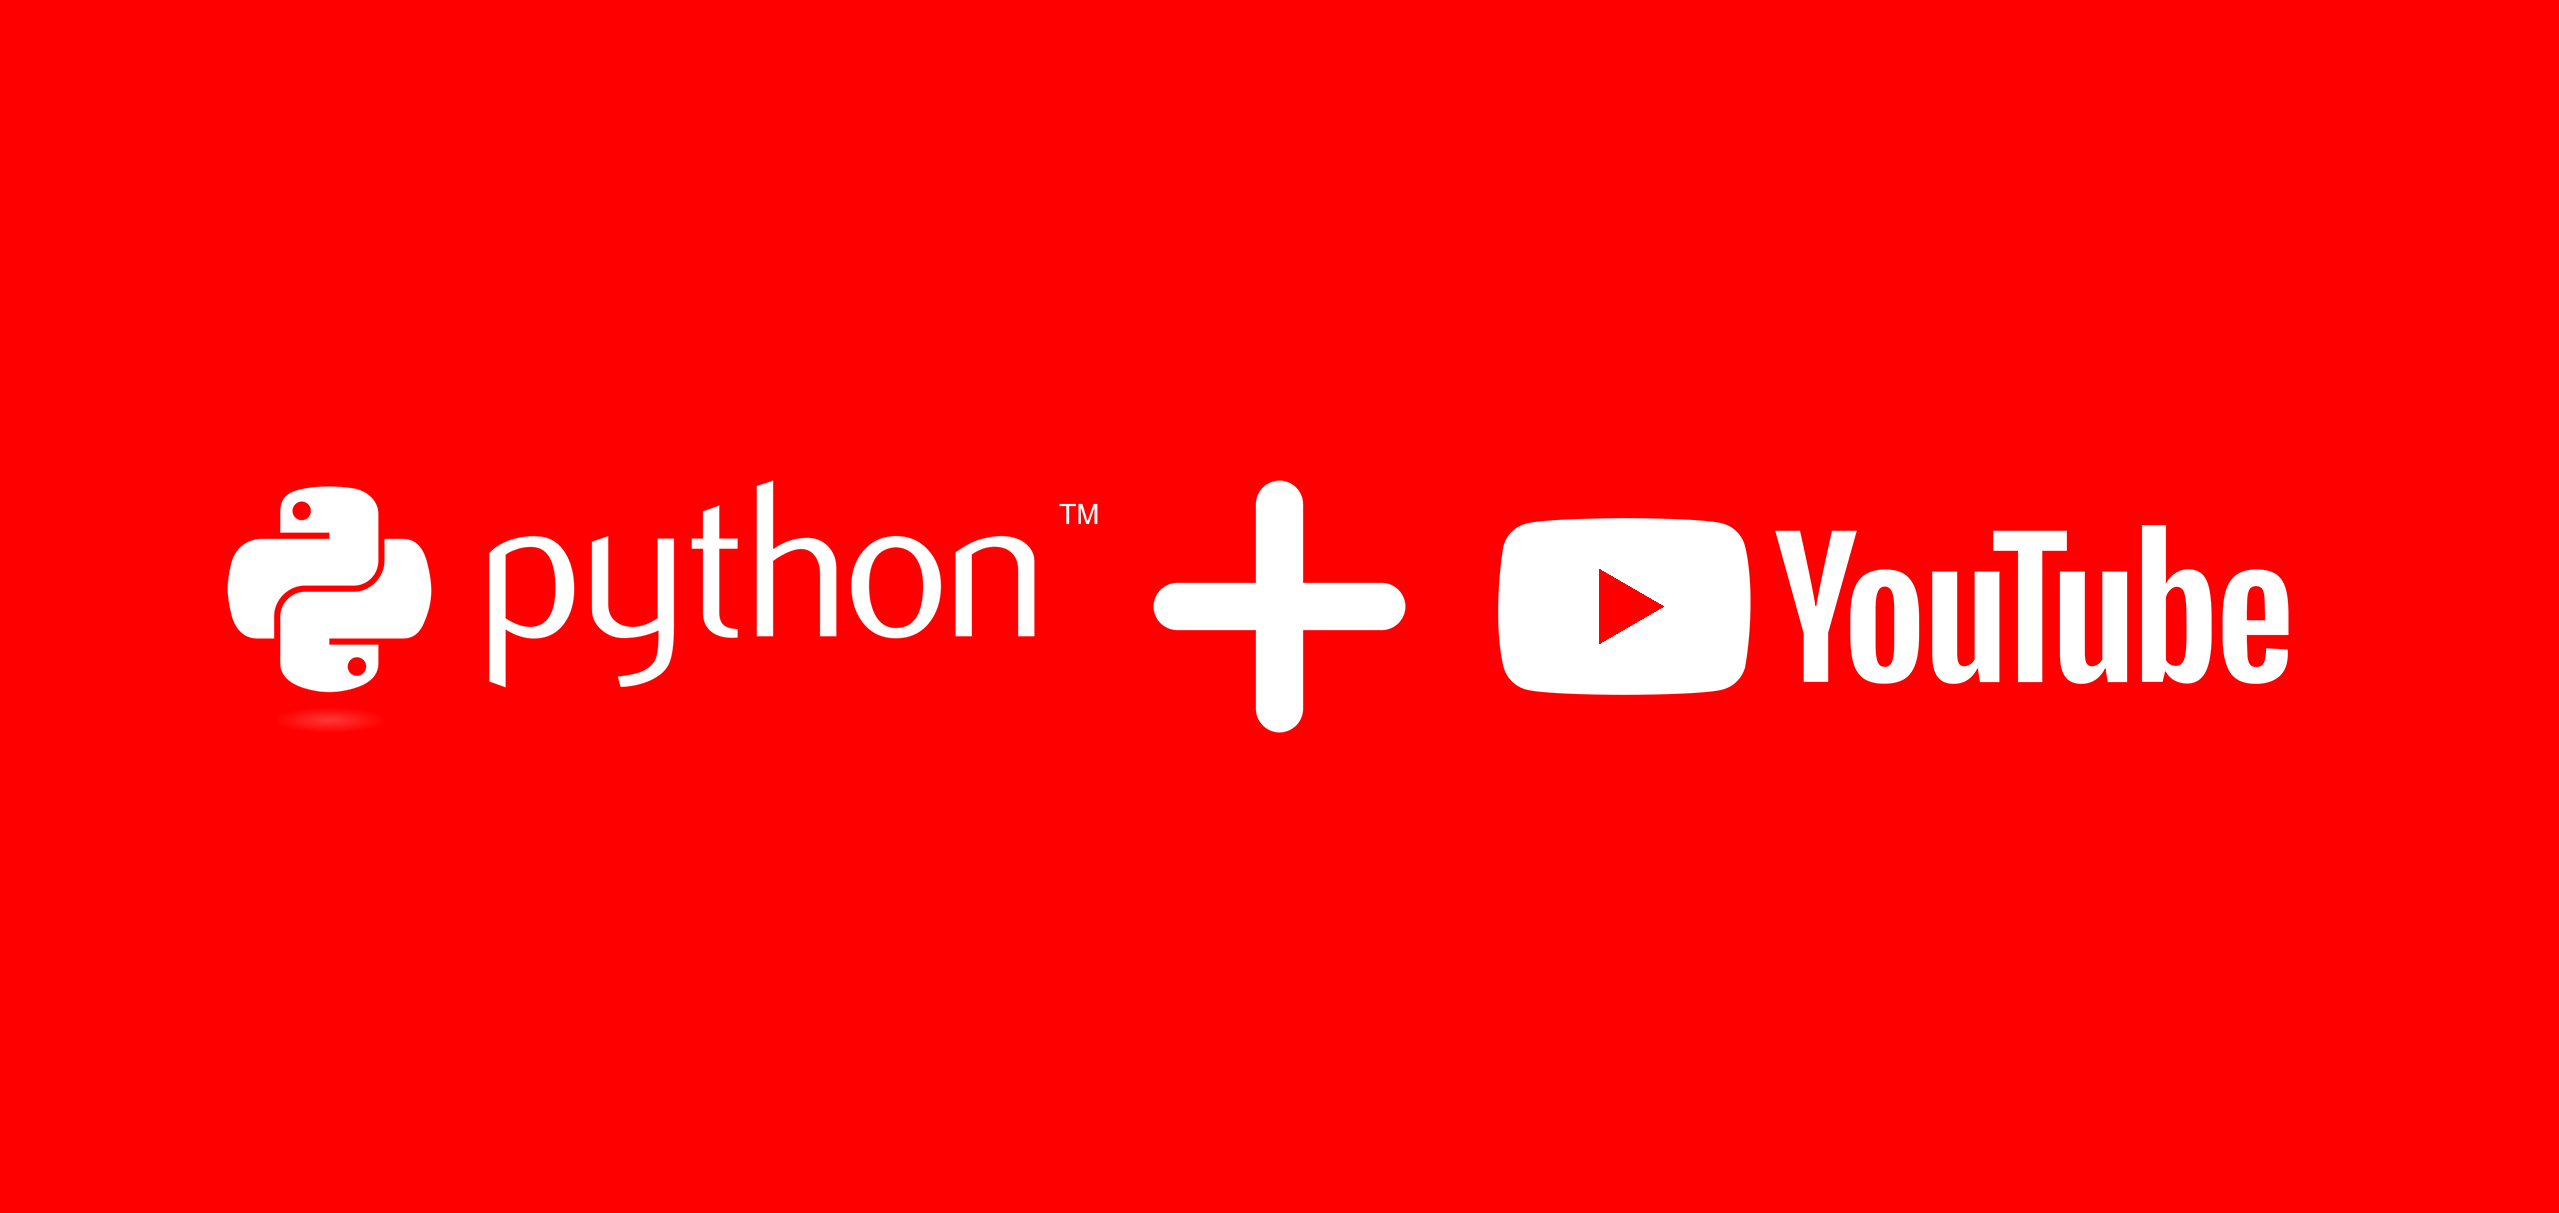 How To Scrape Youtube Video Views With Python